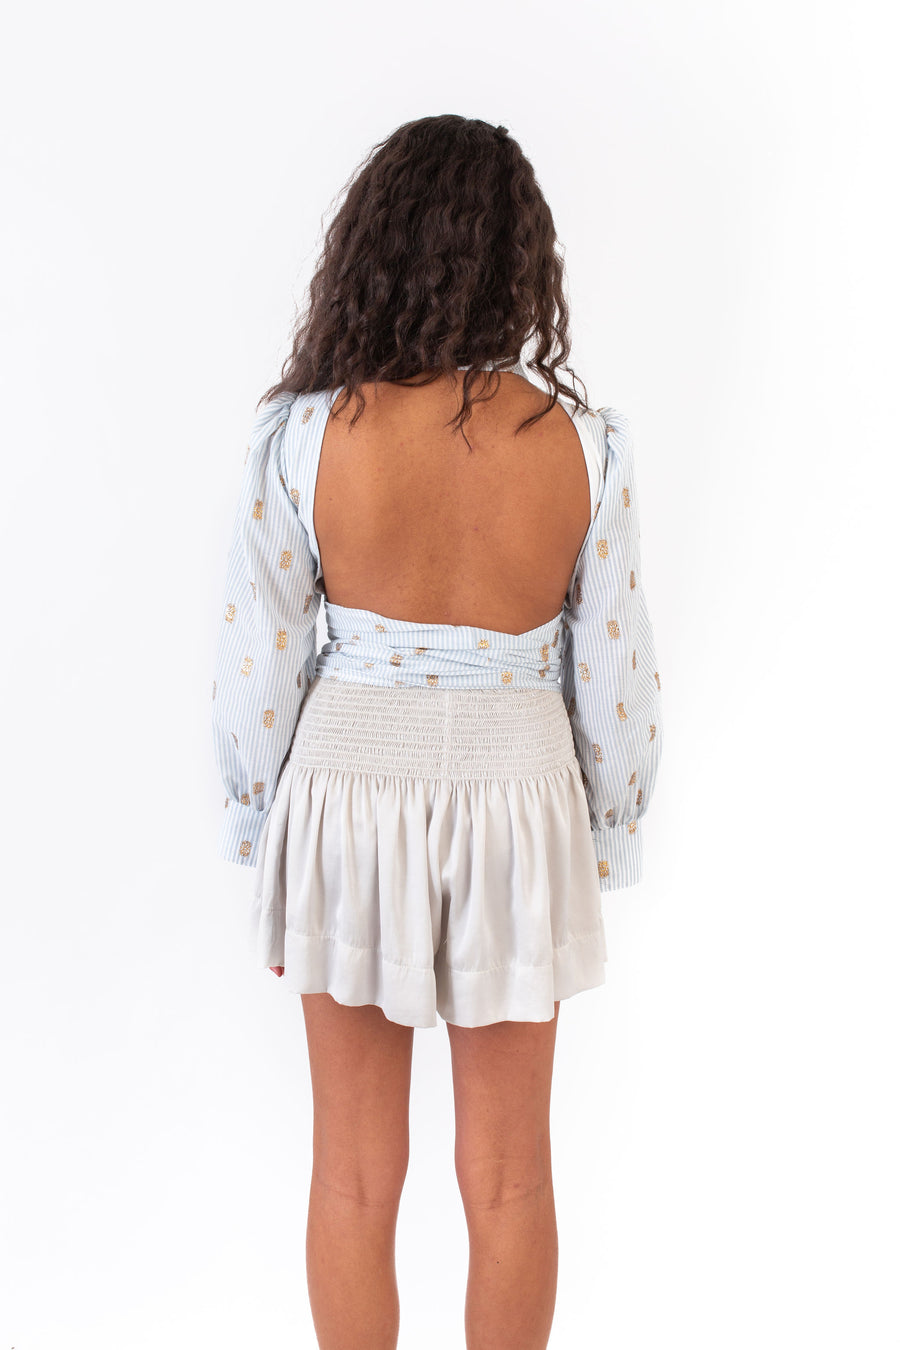 SASHI TOP BLUE AND WHITE STRIPE *LIMITED*EDITION*